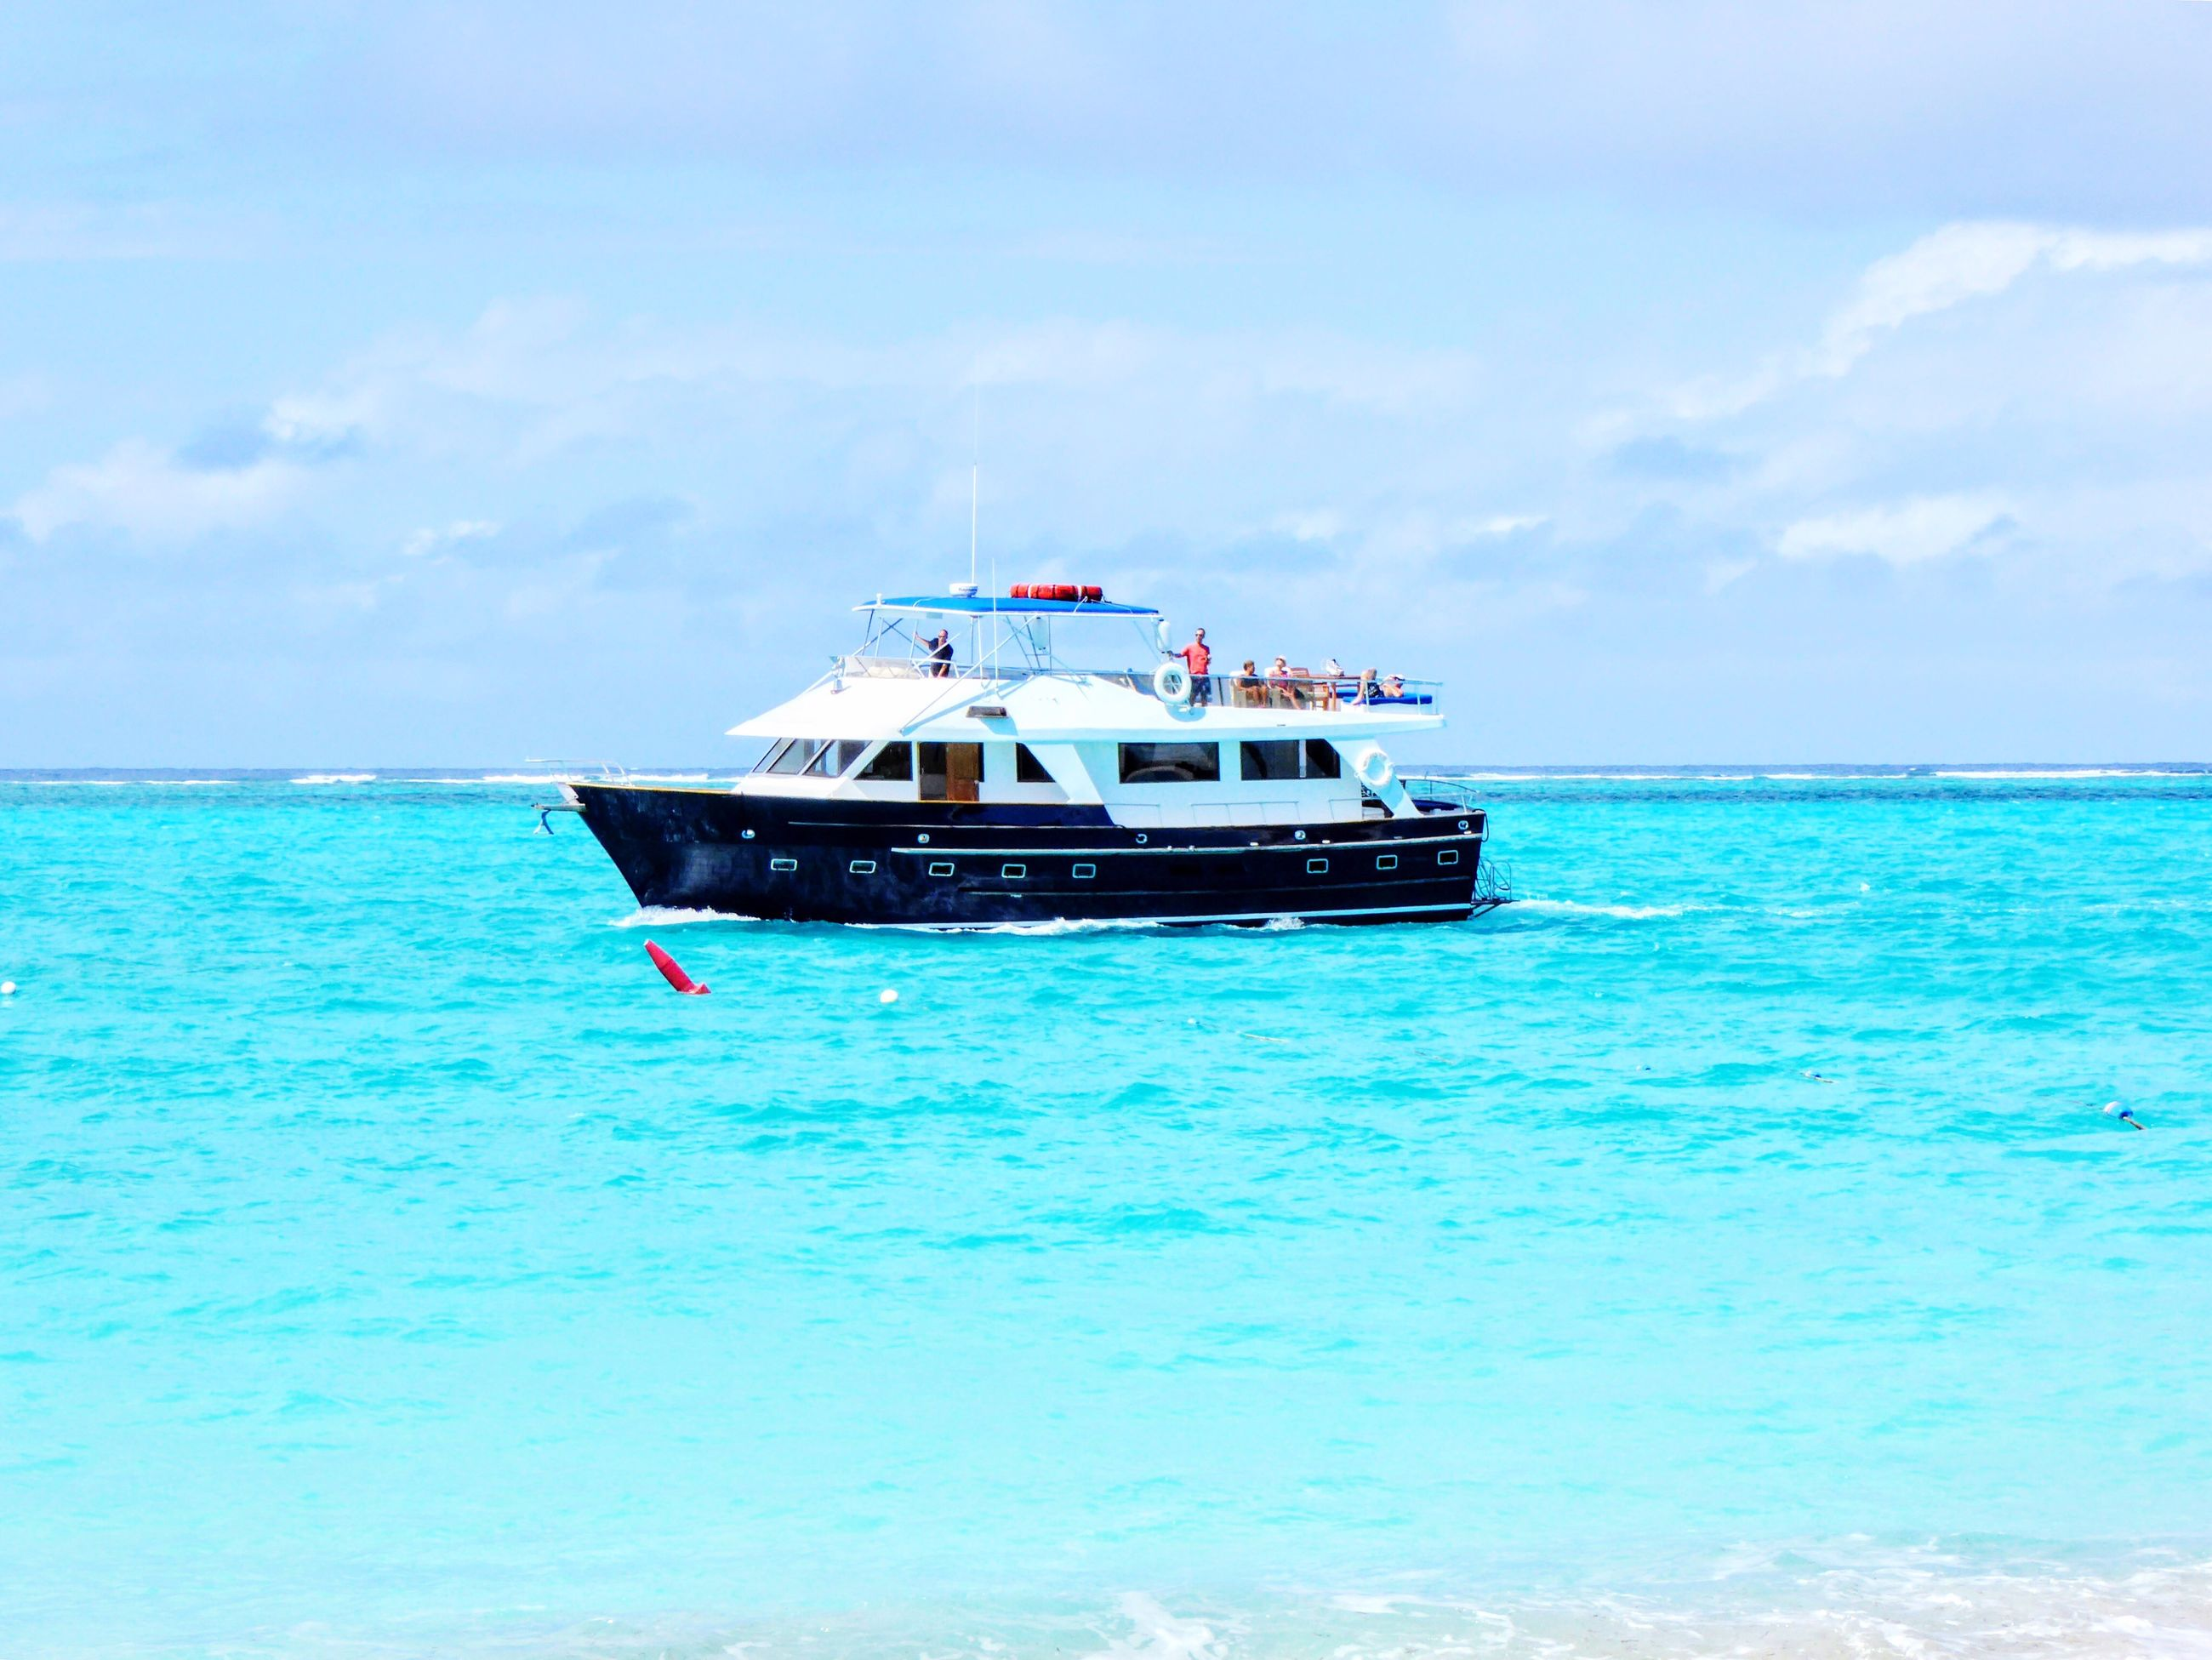 sea, nautical vessel, transportation, mode of transportation, water, sky, travel, nature, day, cloud - sky, beauty in nature, vacations, sailing, turquoise colored, holiday, trip, craft, yacht, blue, outdoors, luxury, horizon over water, no people, passenger craft, cruise ship